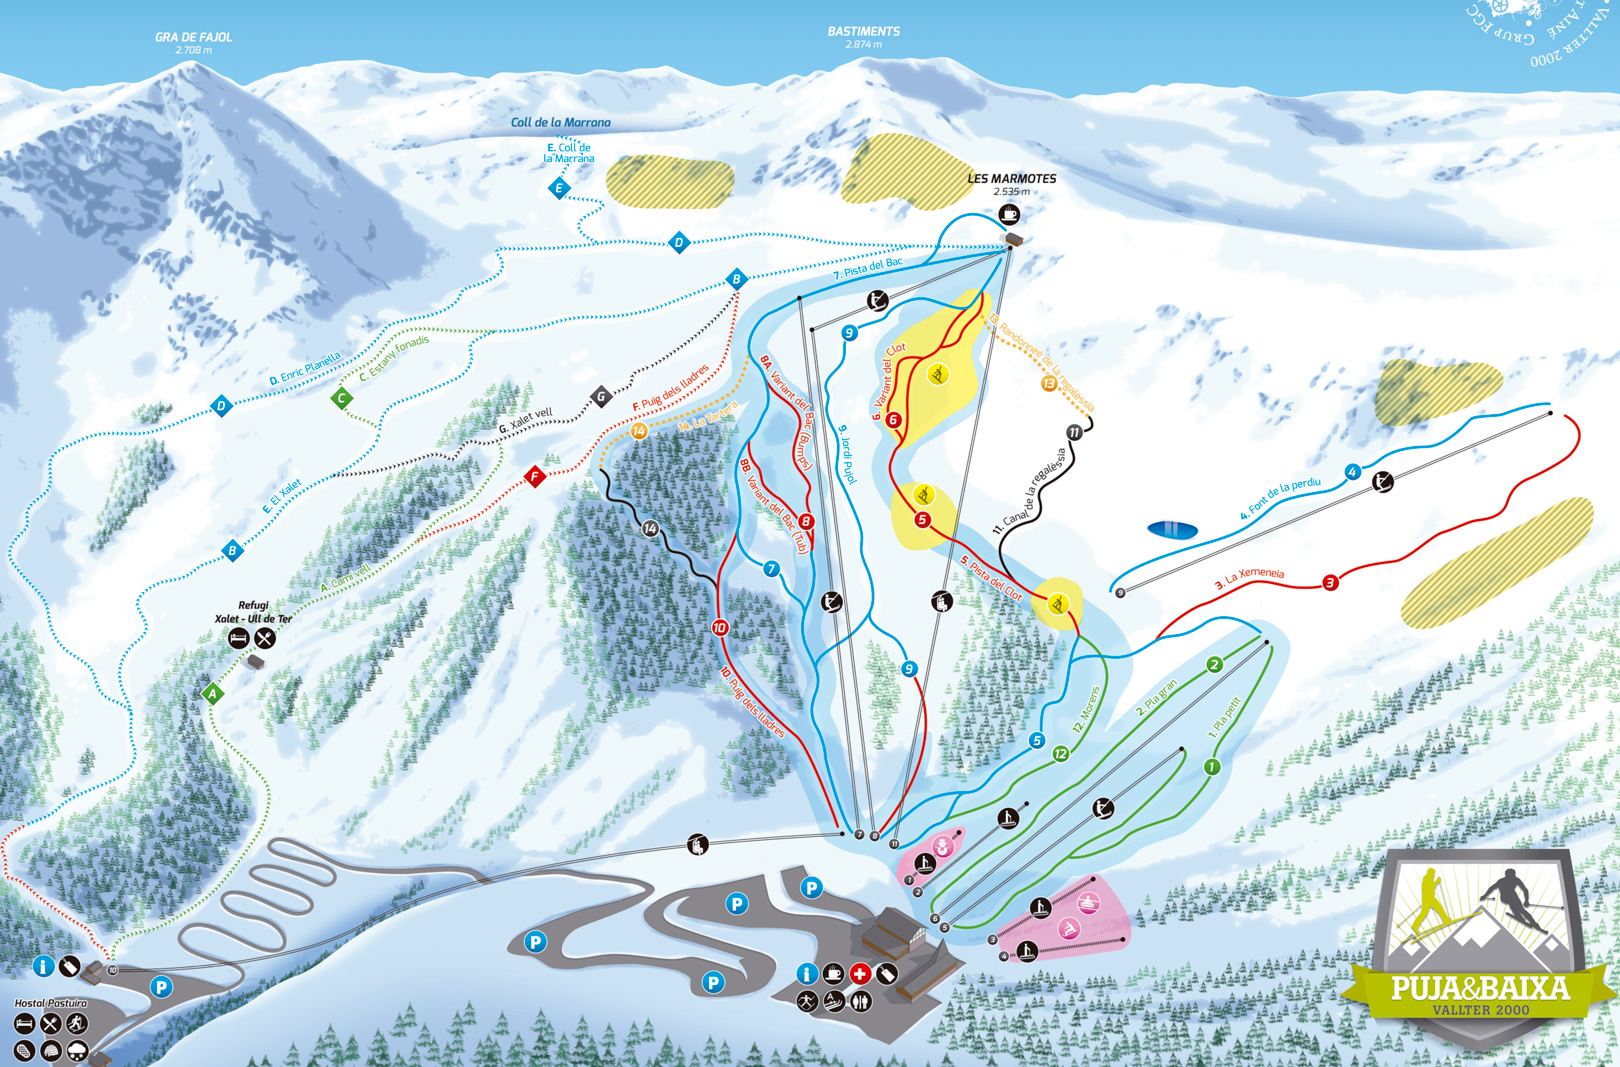 Vallter 2000 Trail map